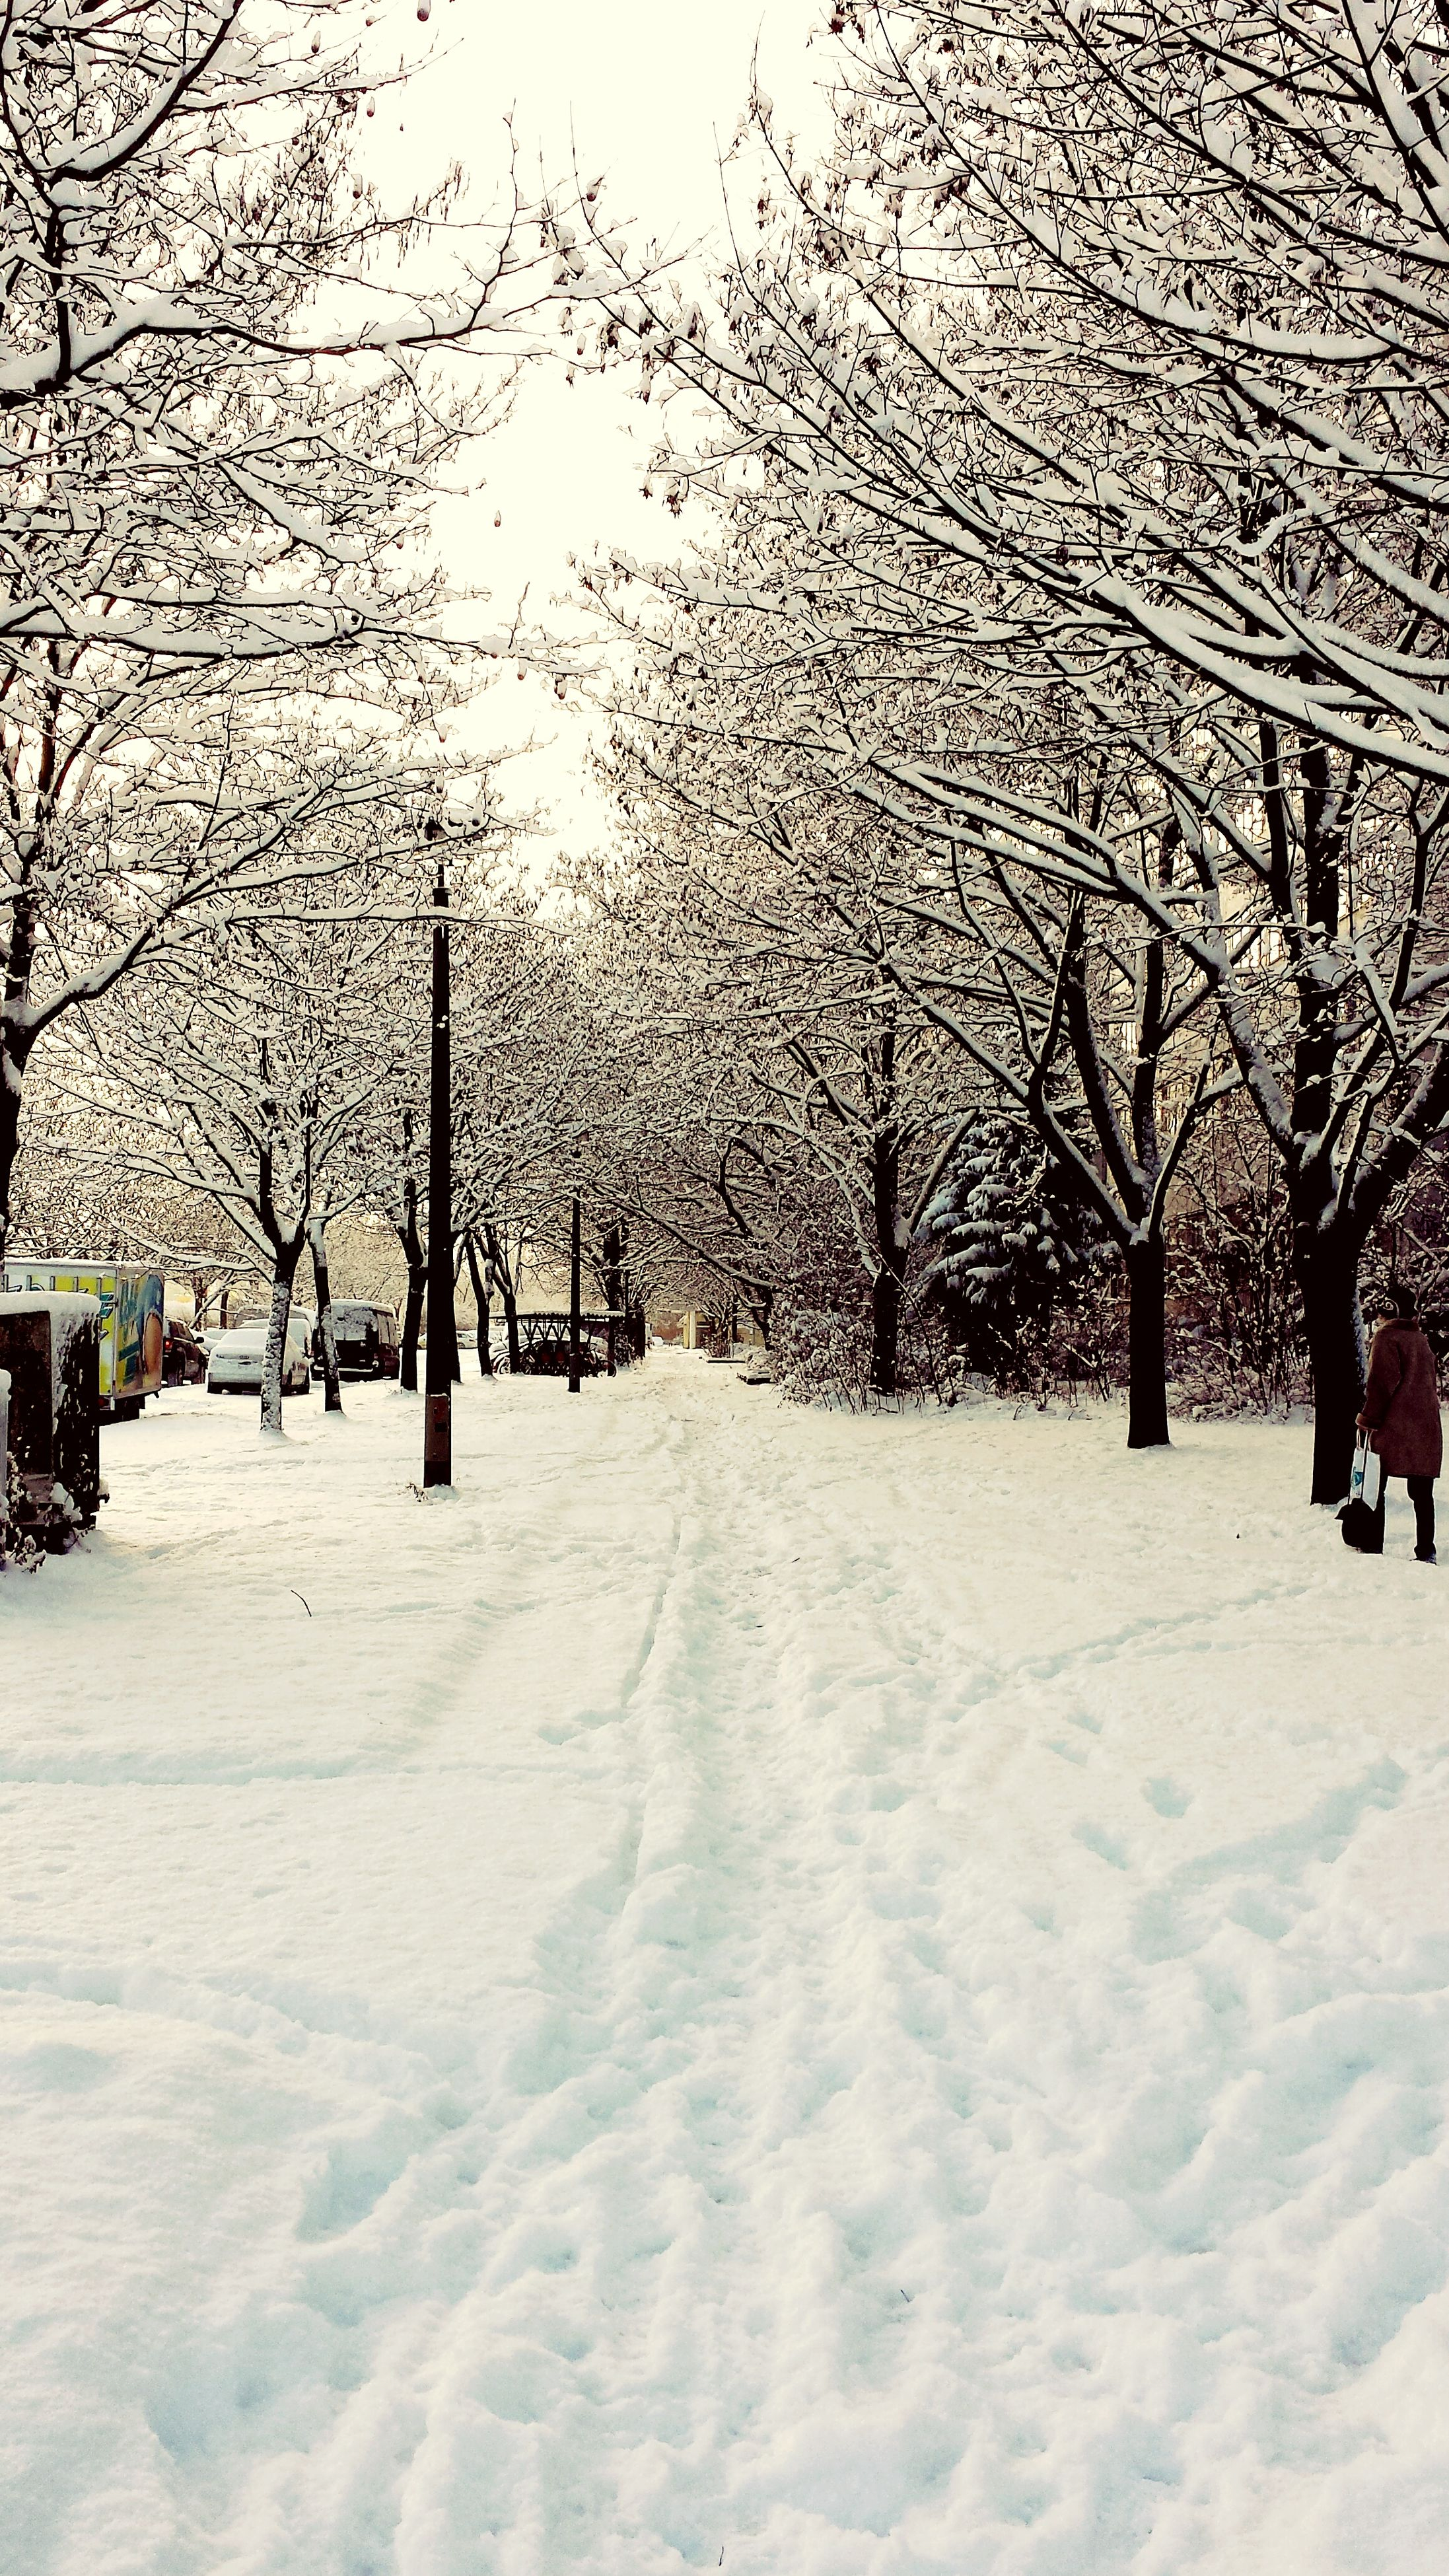 snow, winter, cold temperature, tree, season, weather, bare tree, the way forward, covering, tranquility, tranquil scene, nature, landscape, field, beauty in nature, covered, scenics, diminishing perspective, white color, empty